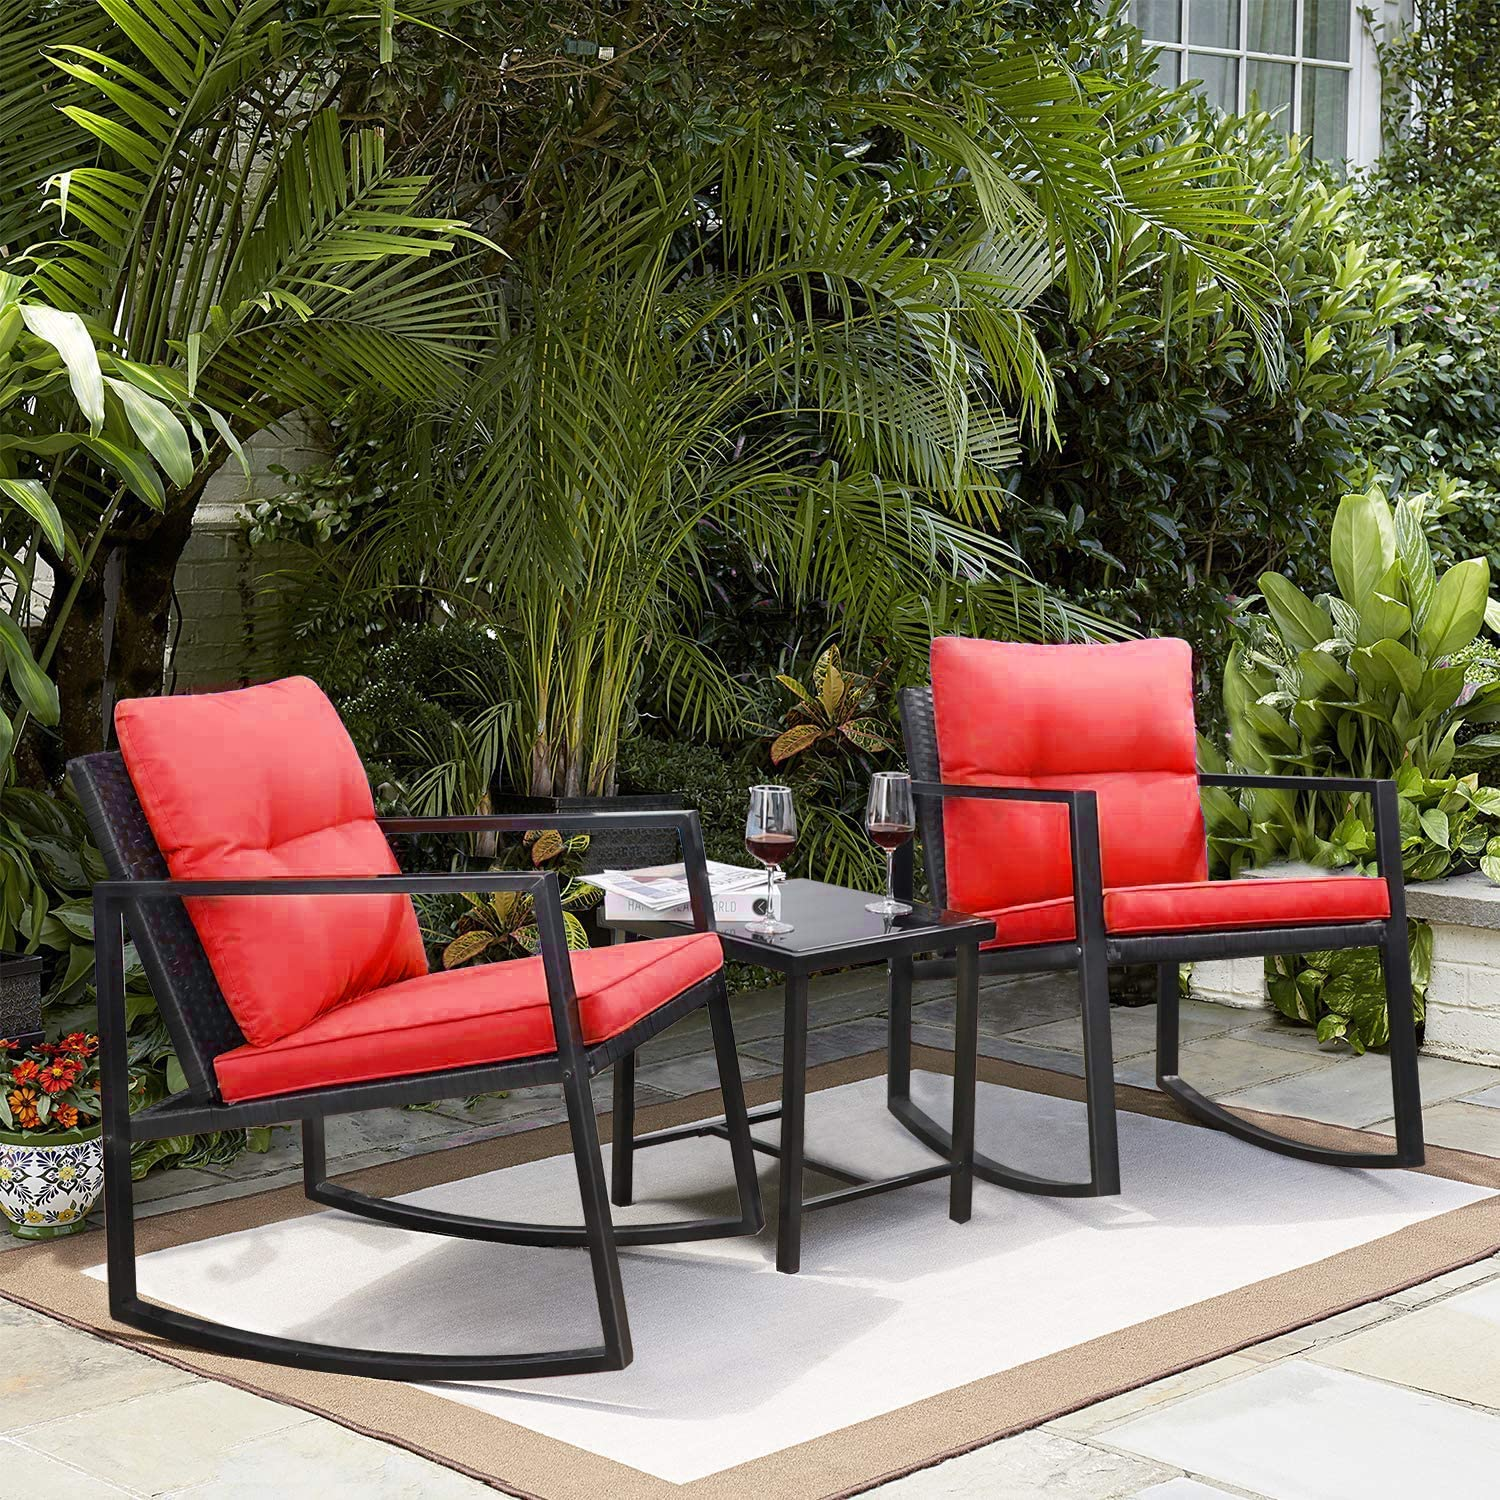 Greesum GS-3RRCSRD 3 Pieces Patio Furniture Set,Glass Coffee Table, Red